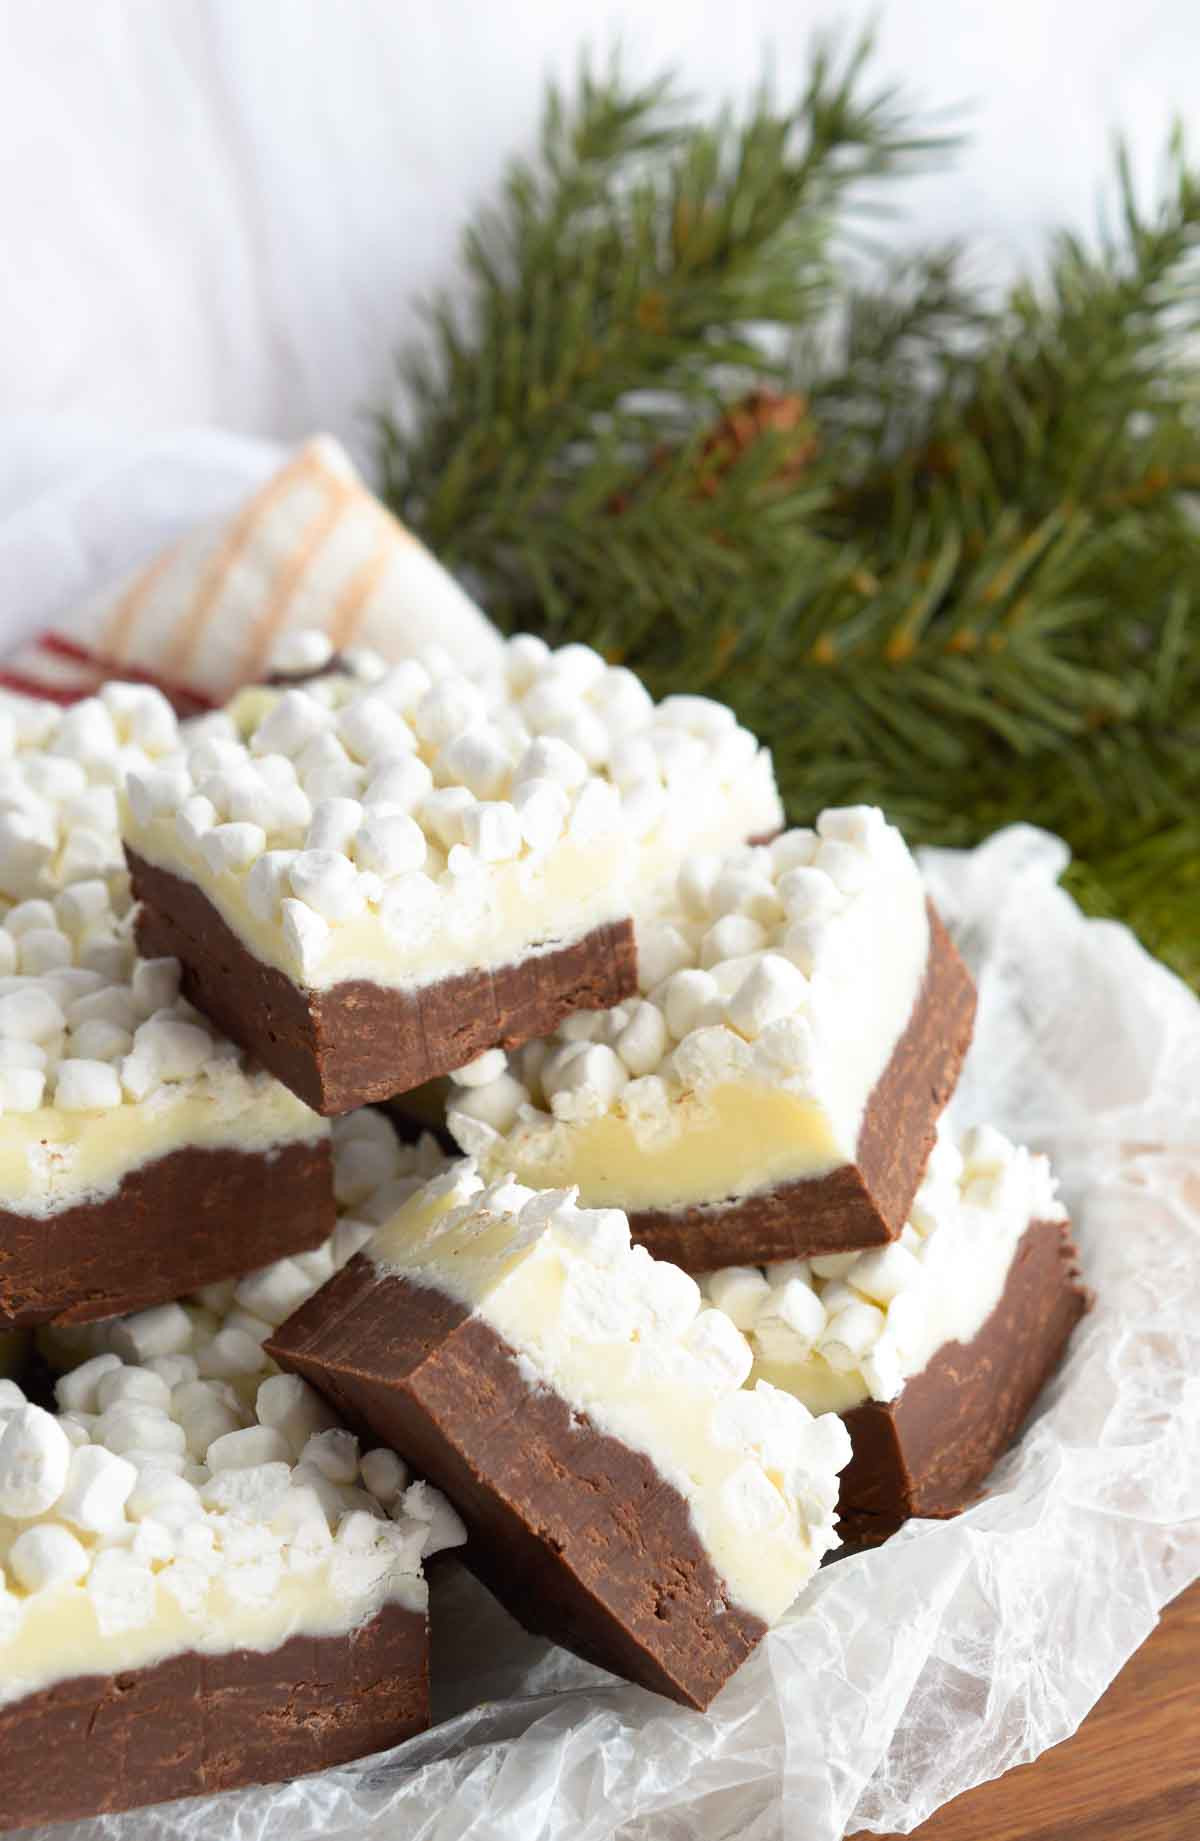 Chocolate Desserts Easy  23 Fall & Winter Easy Healthy Desserts To Make At Home